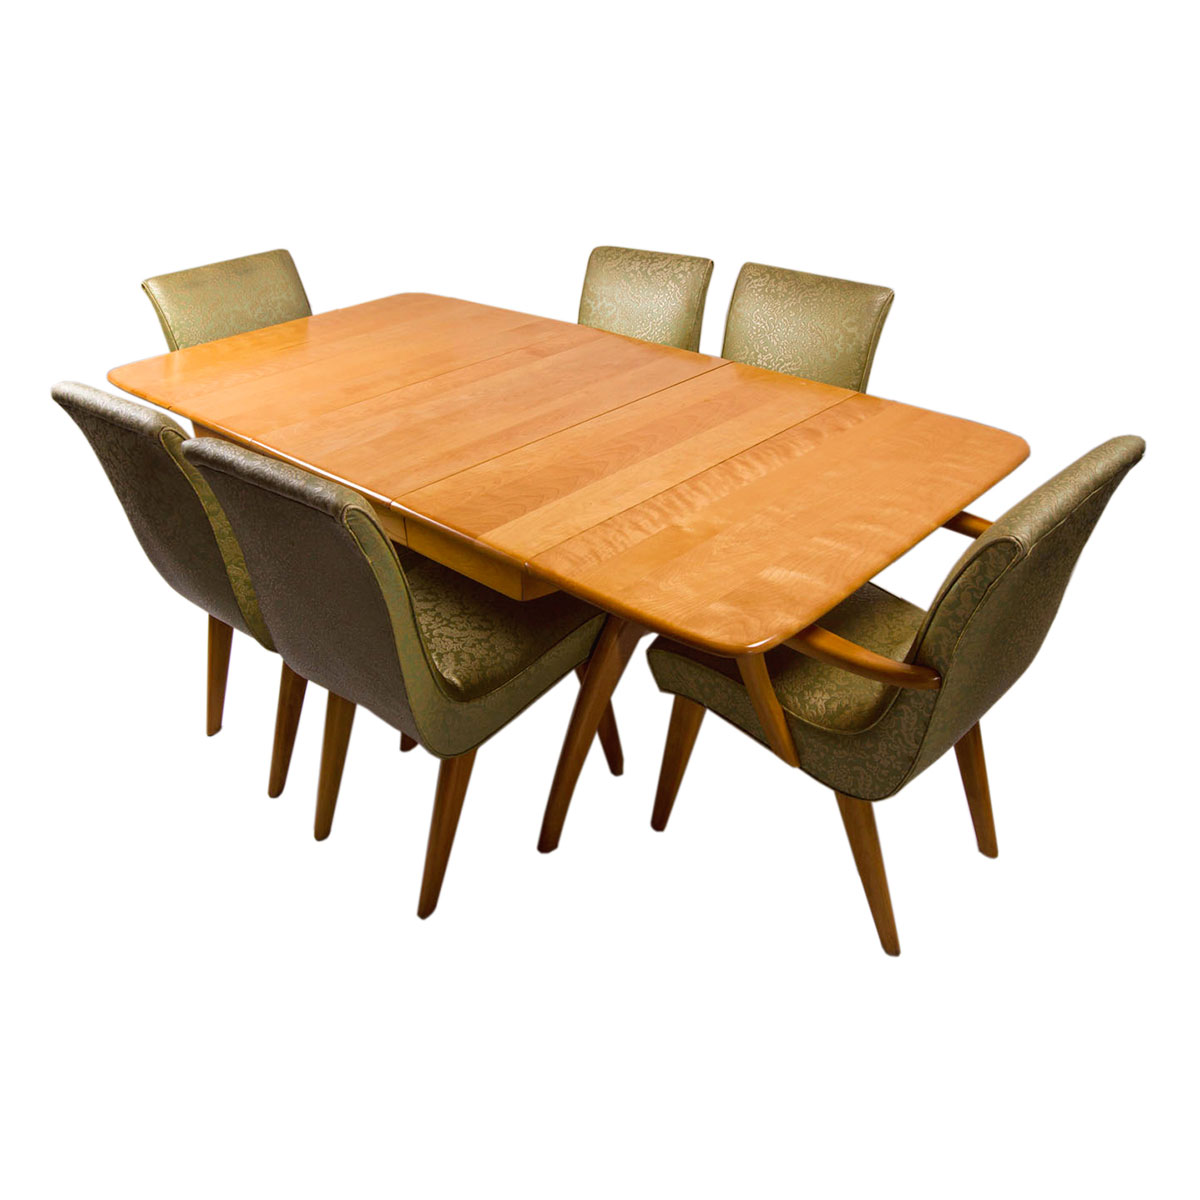 Set of 6 Heywood Wakefield Dining Chairs / Table Set